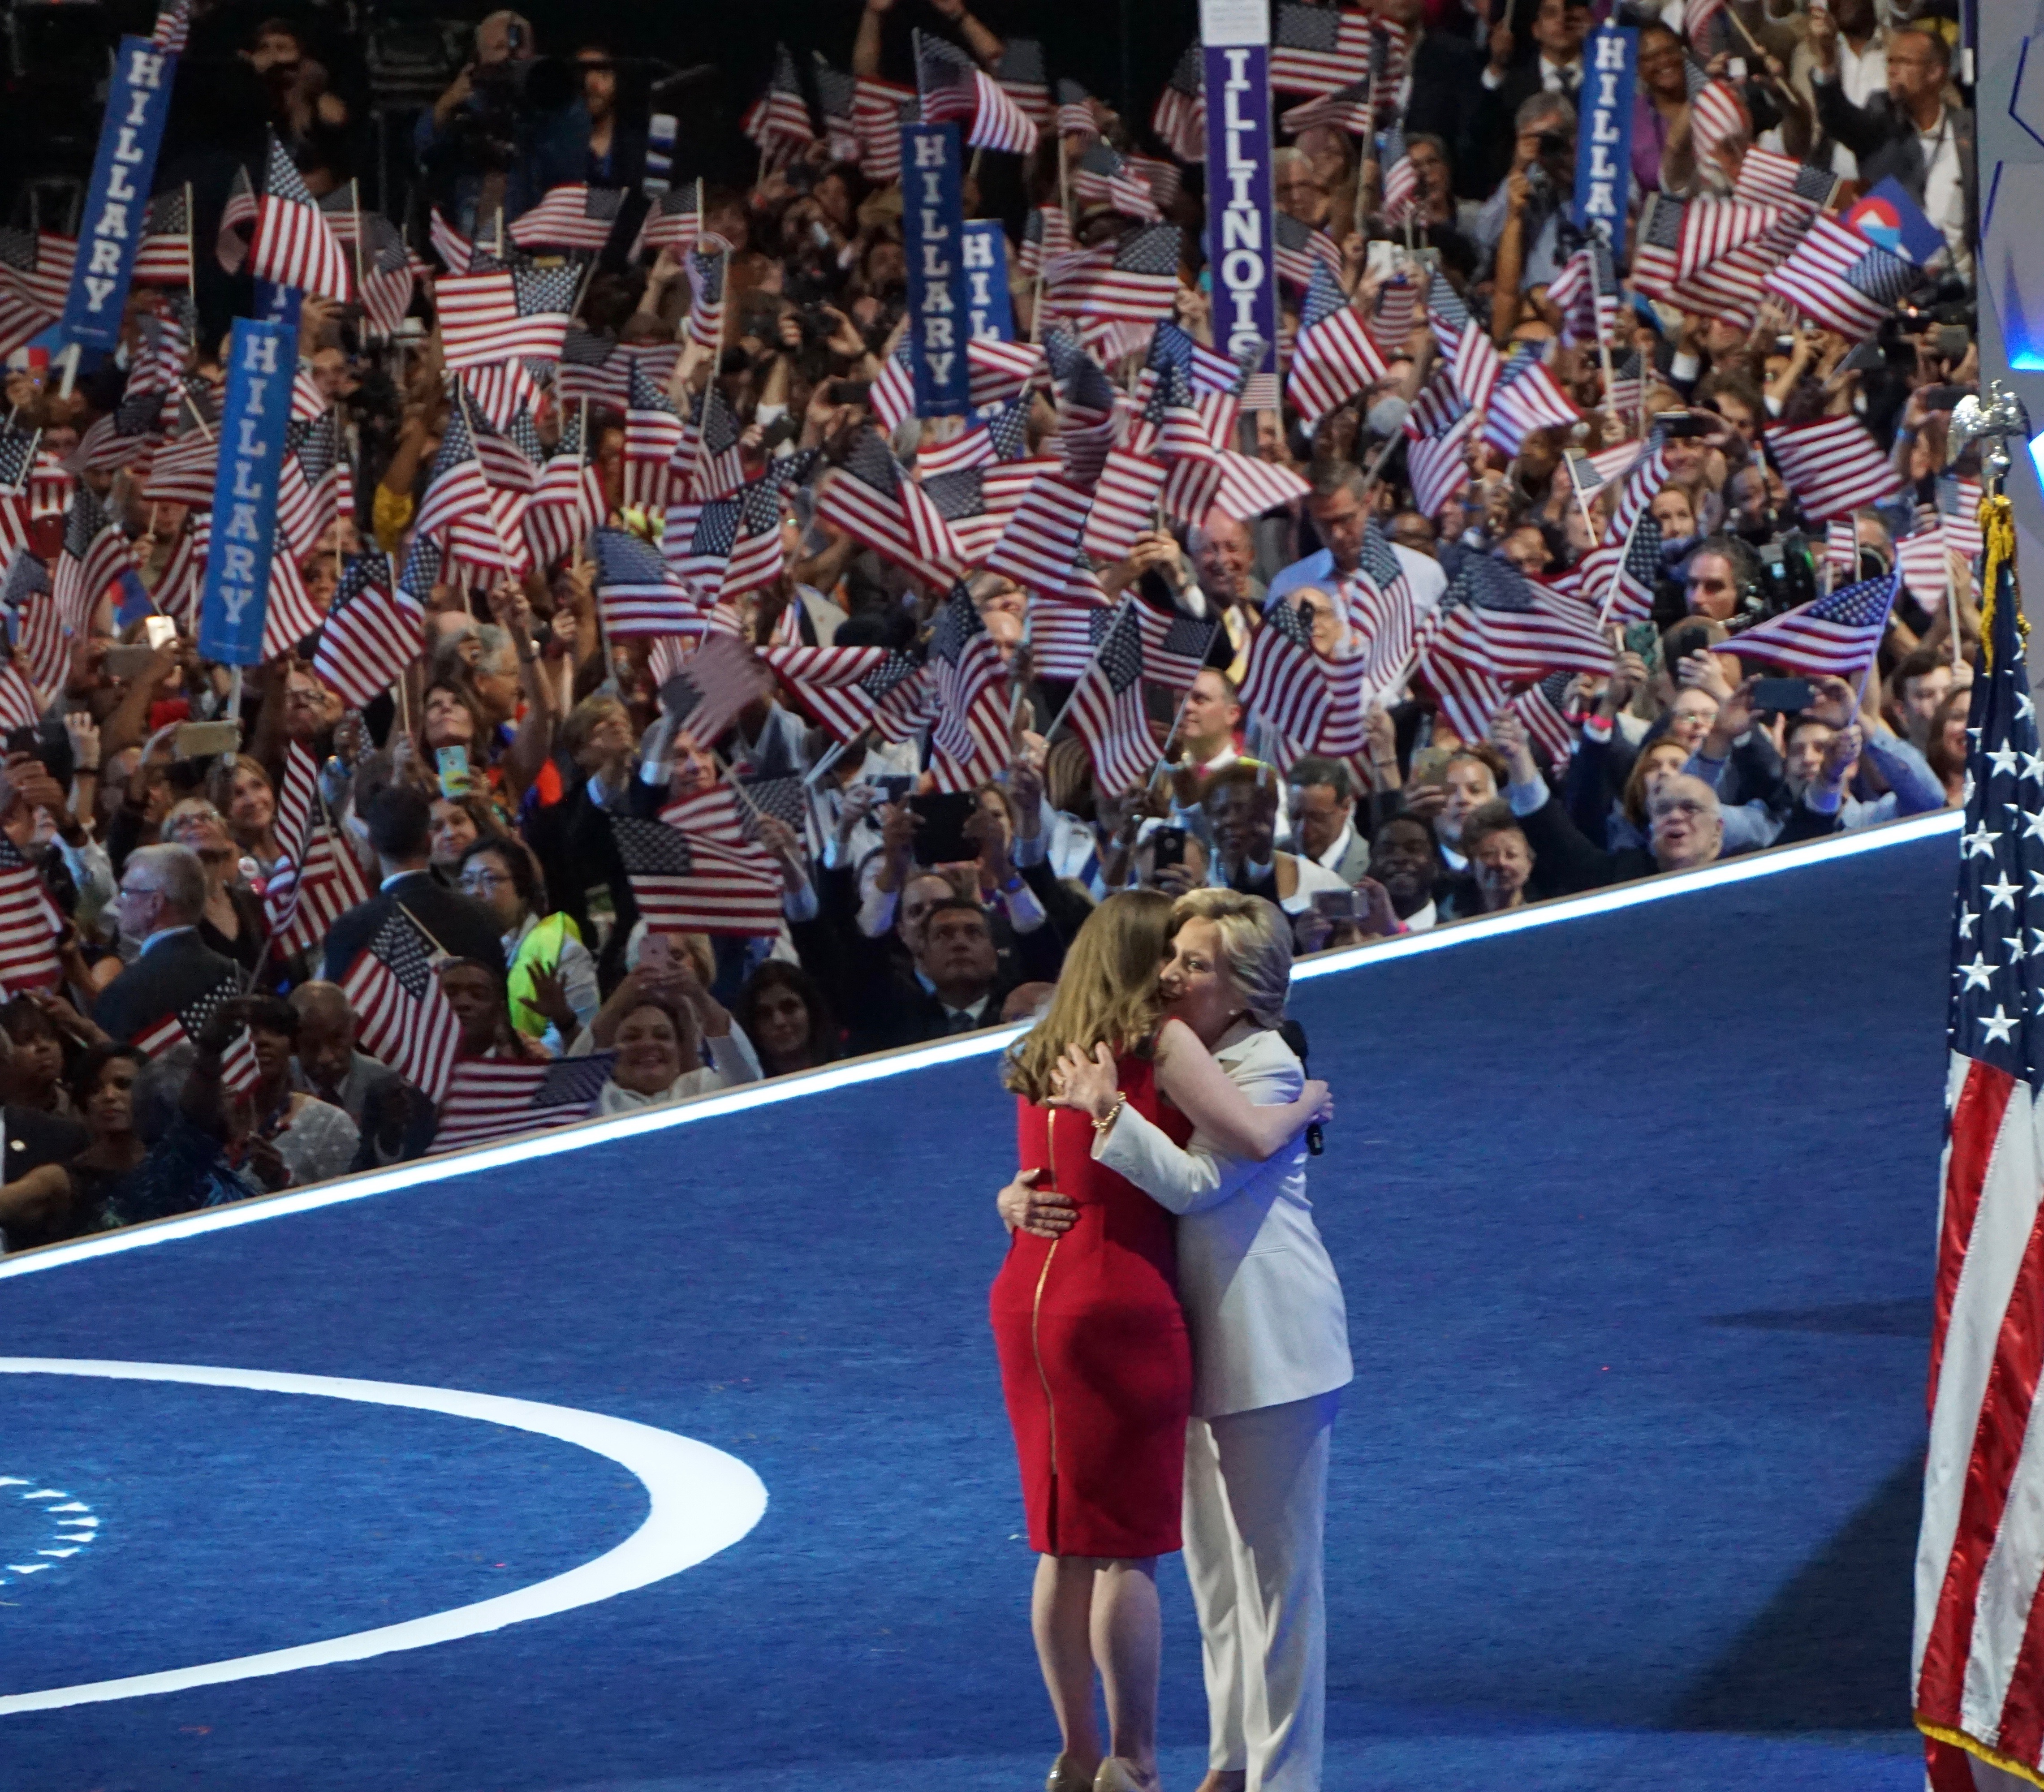 PHOTO GALLERY: The Democratic convention through a CT lens